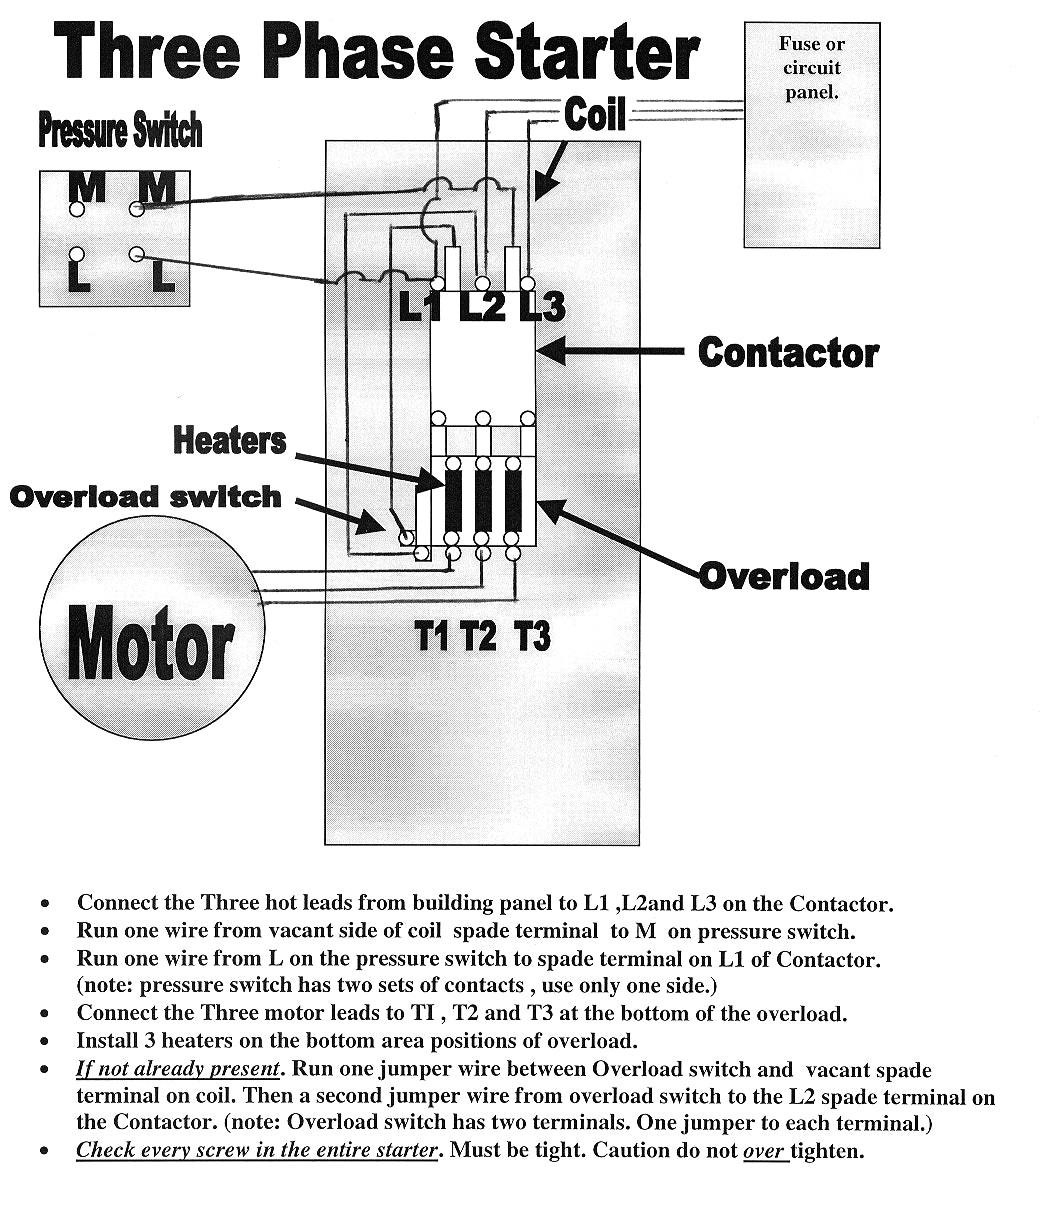 Motor Starter Hand Off Auto Wiring Diagram - Wiring Diagrams